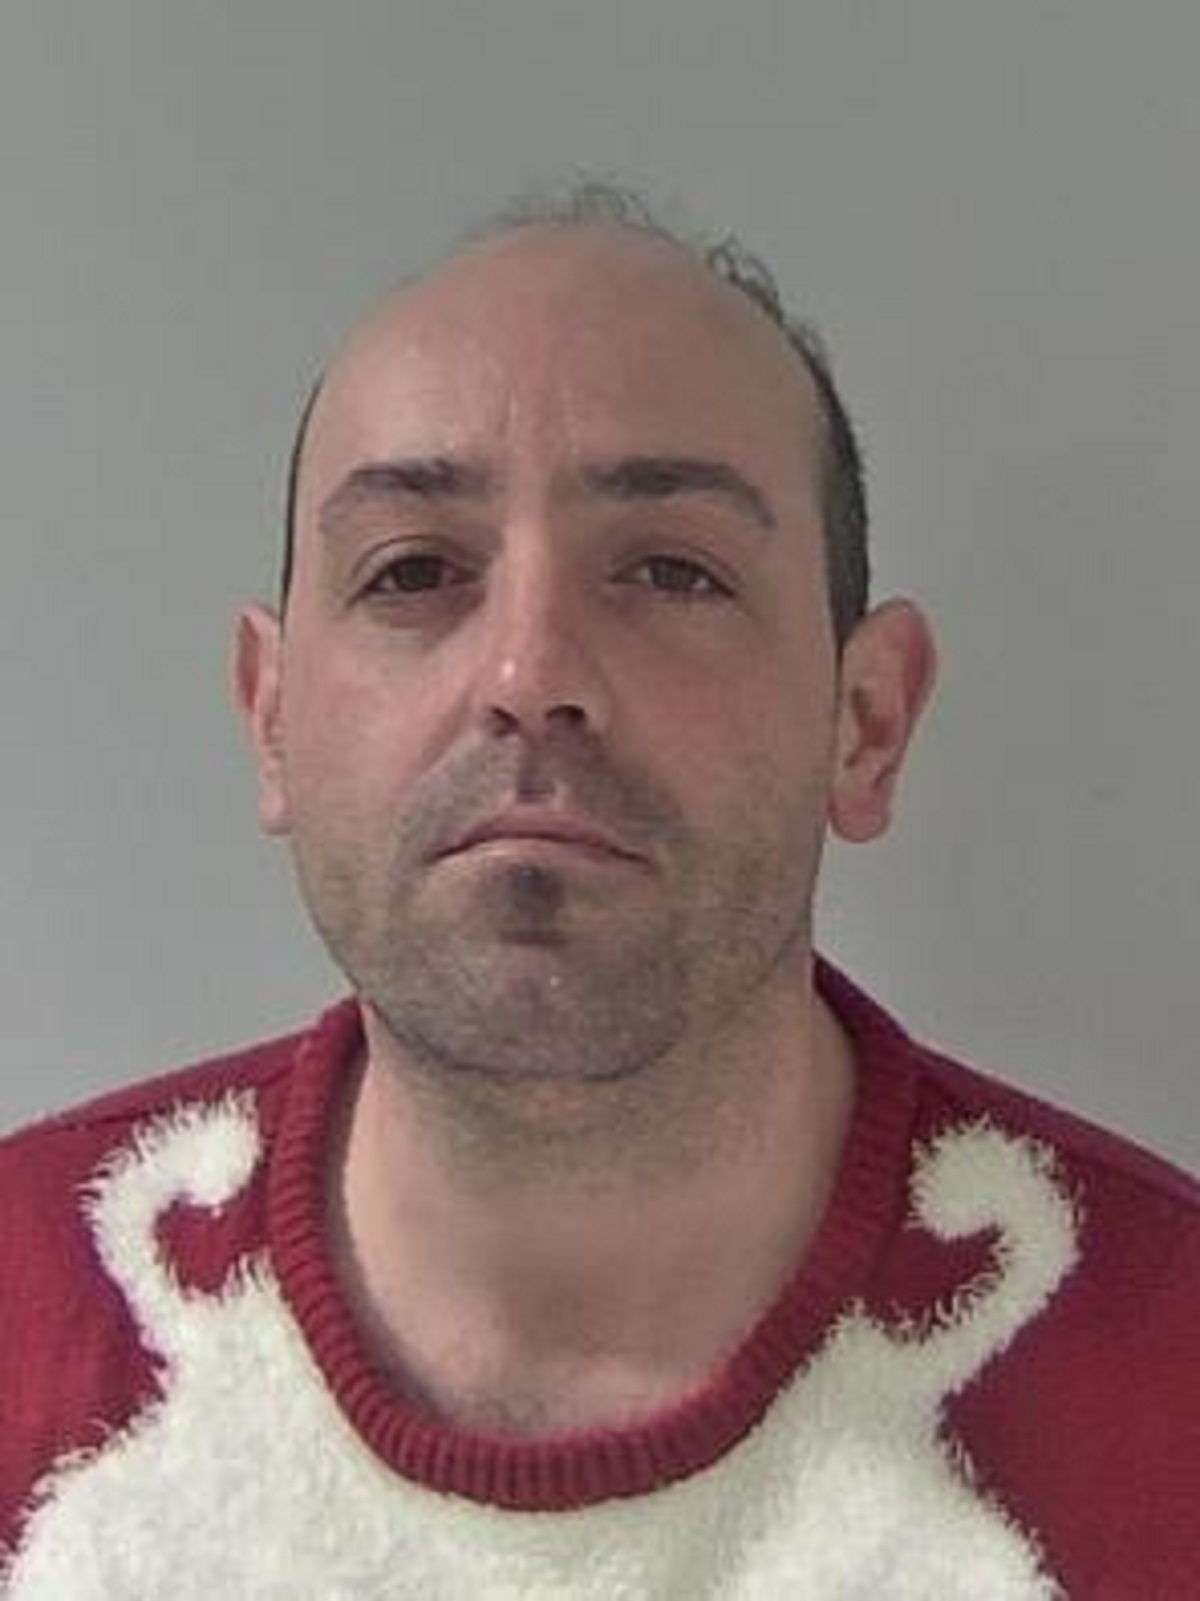 BANNED: Louis Roque-Fernandes. Picture: West Mercia Police.